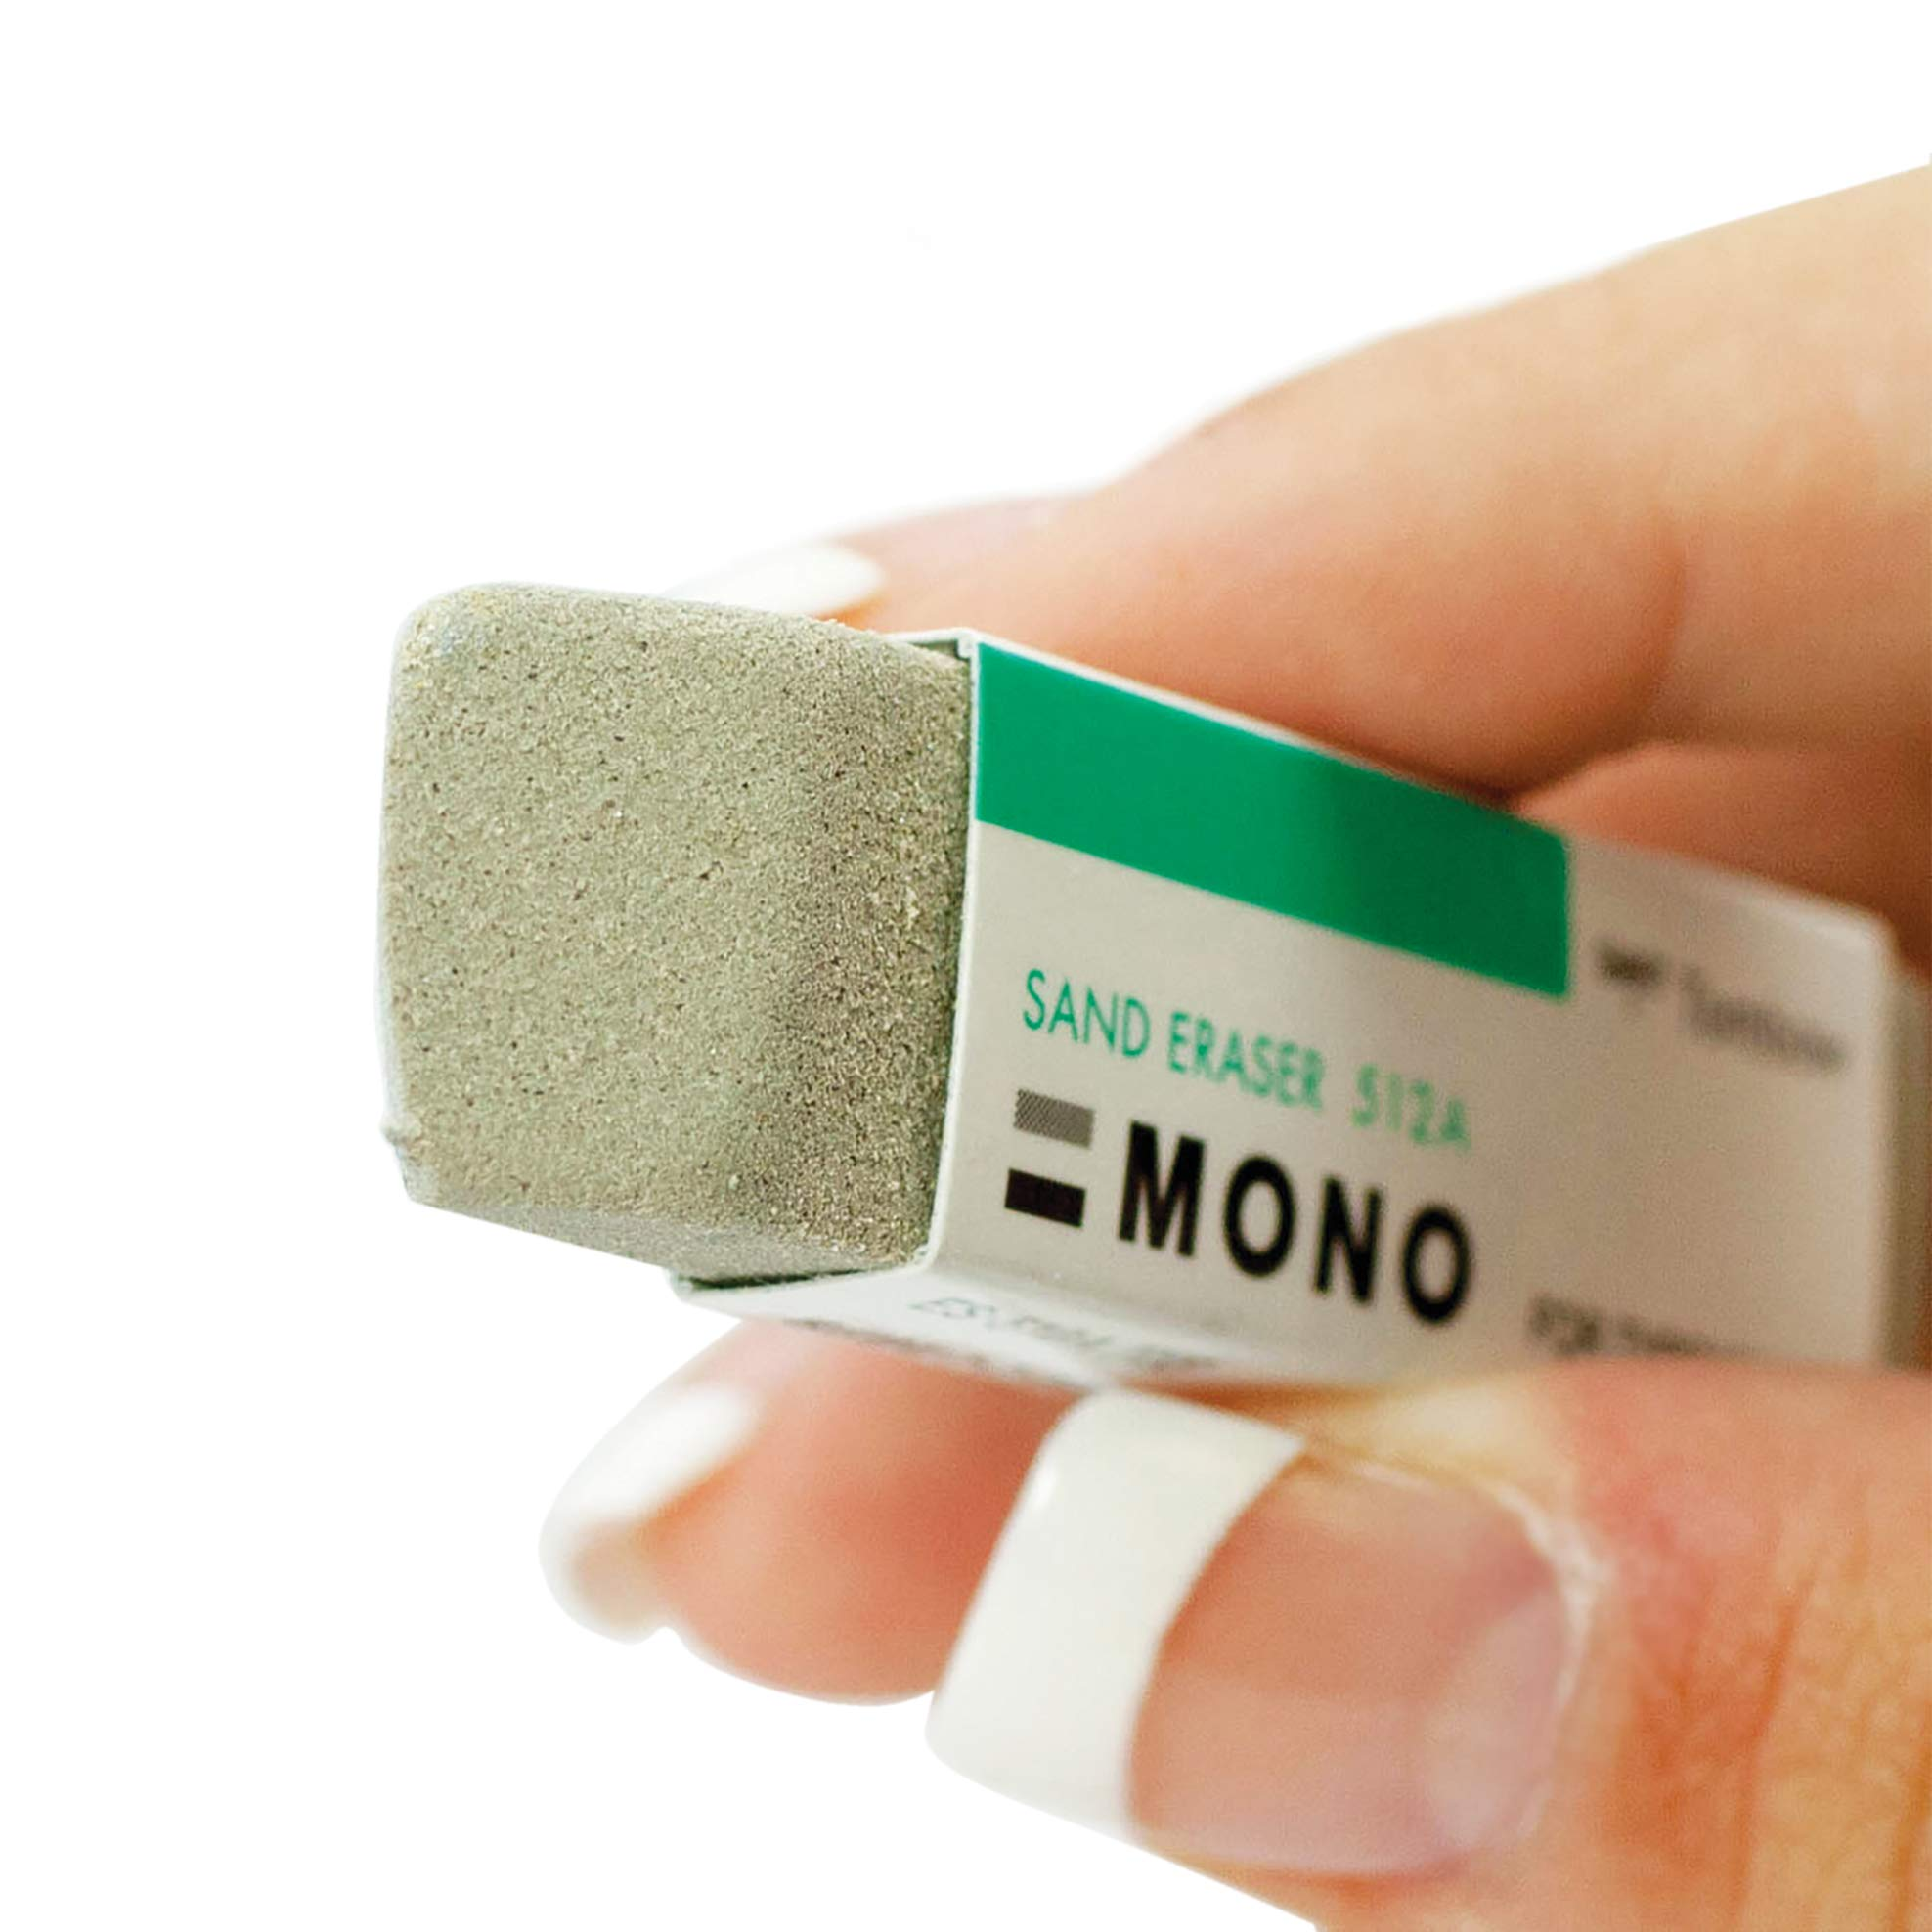 Tombow 67304 MONO Sand Eraser, 2-Pack. Silica Eraser Designed to Remove Colored Pencil and Ink Markings by Tombow (Image #3)